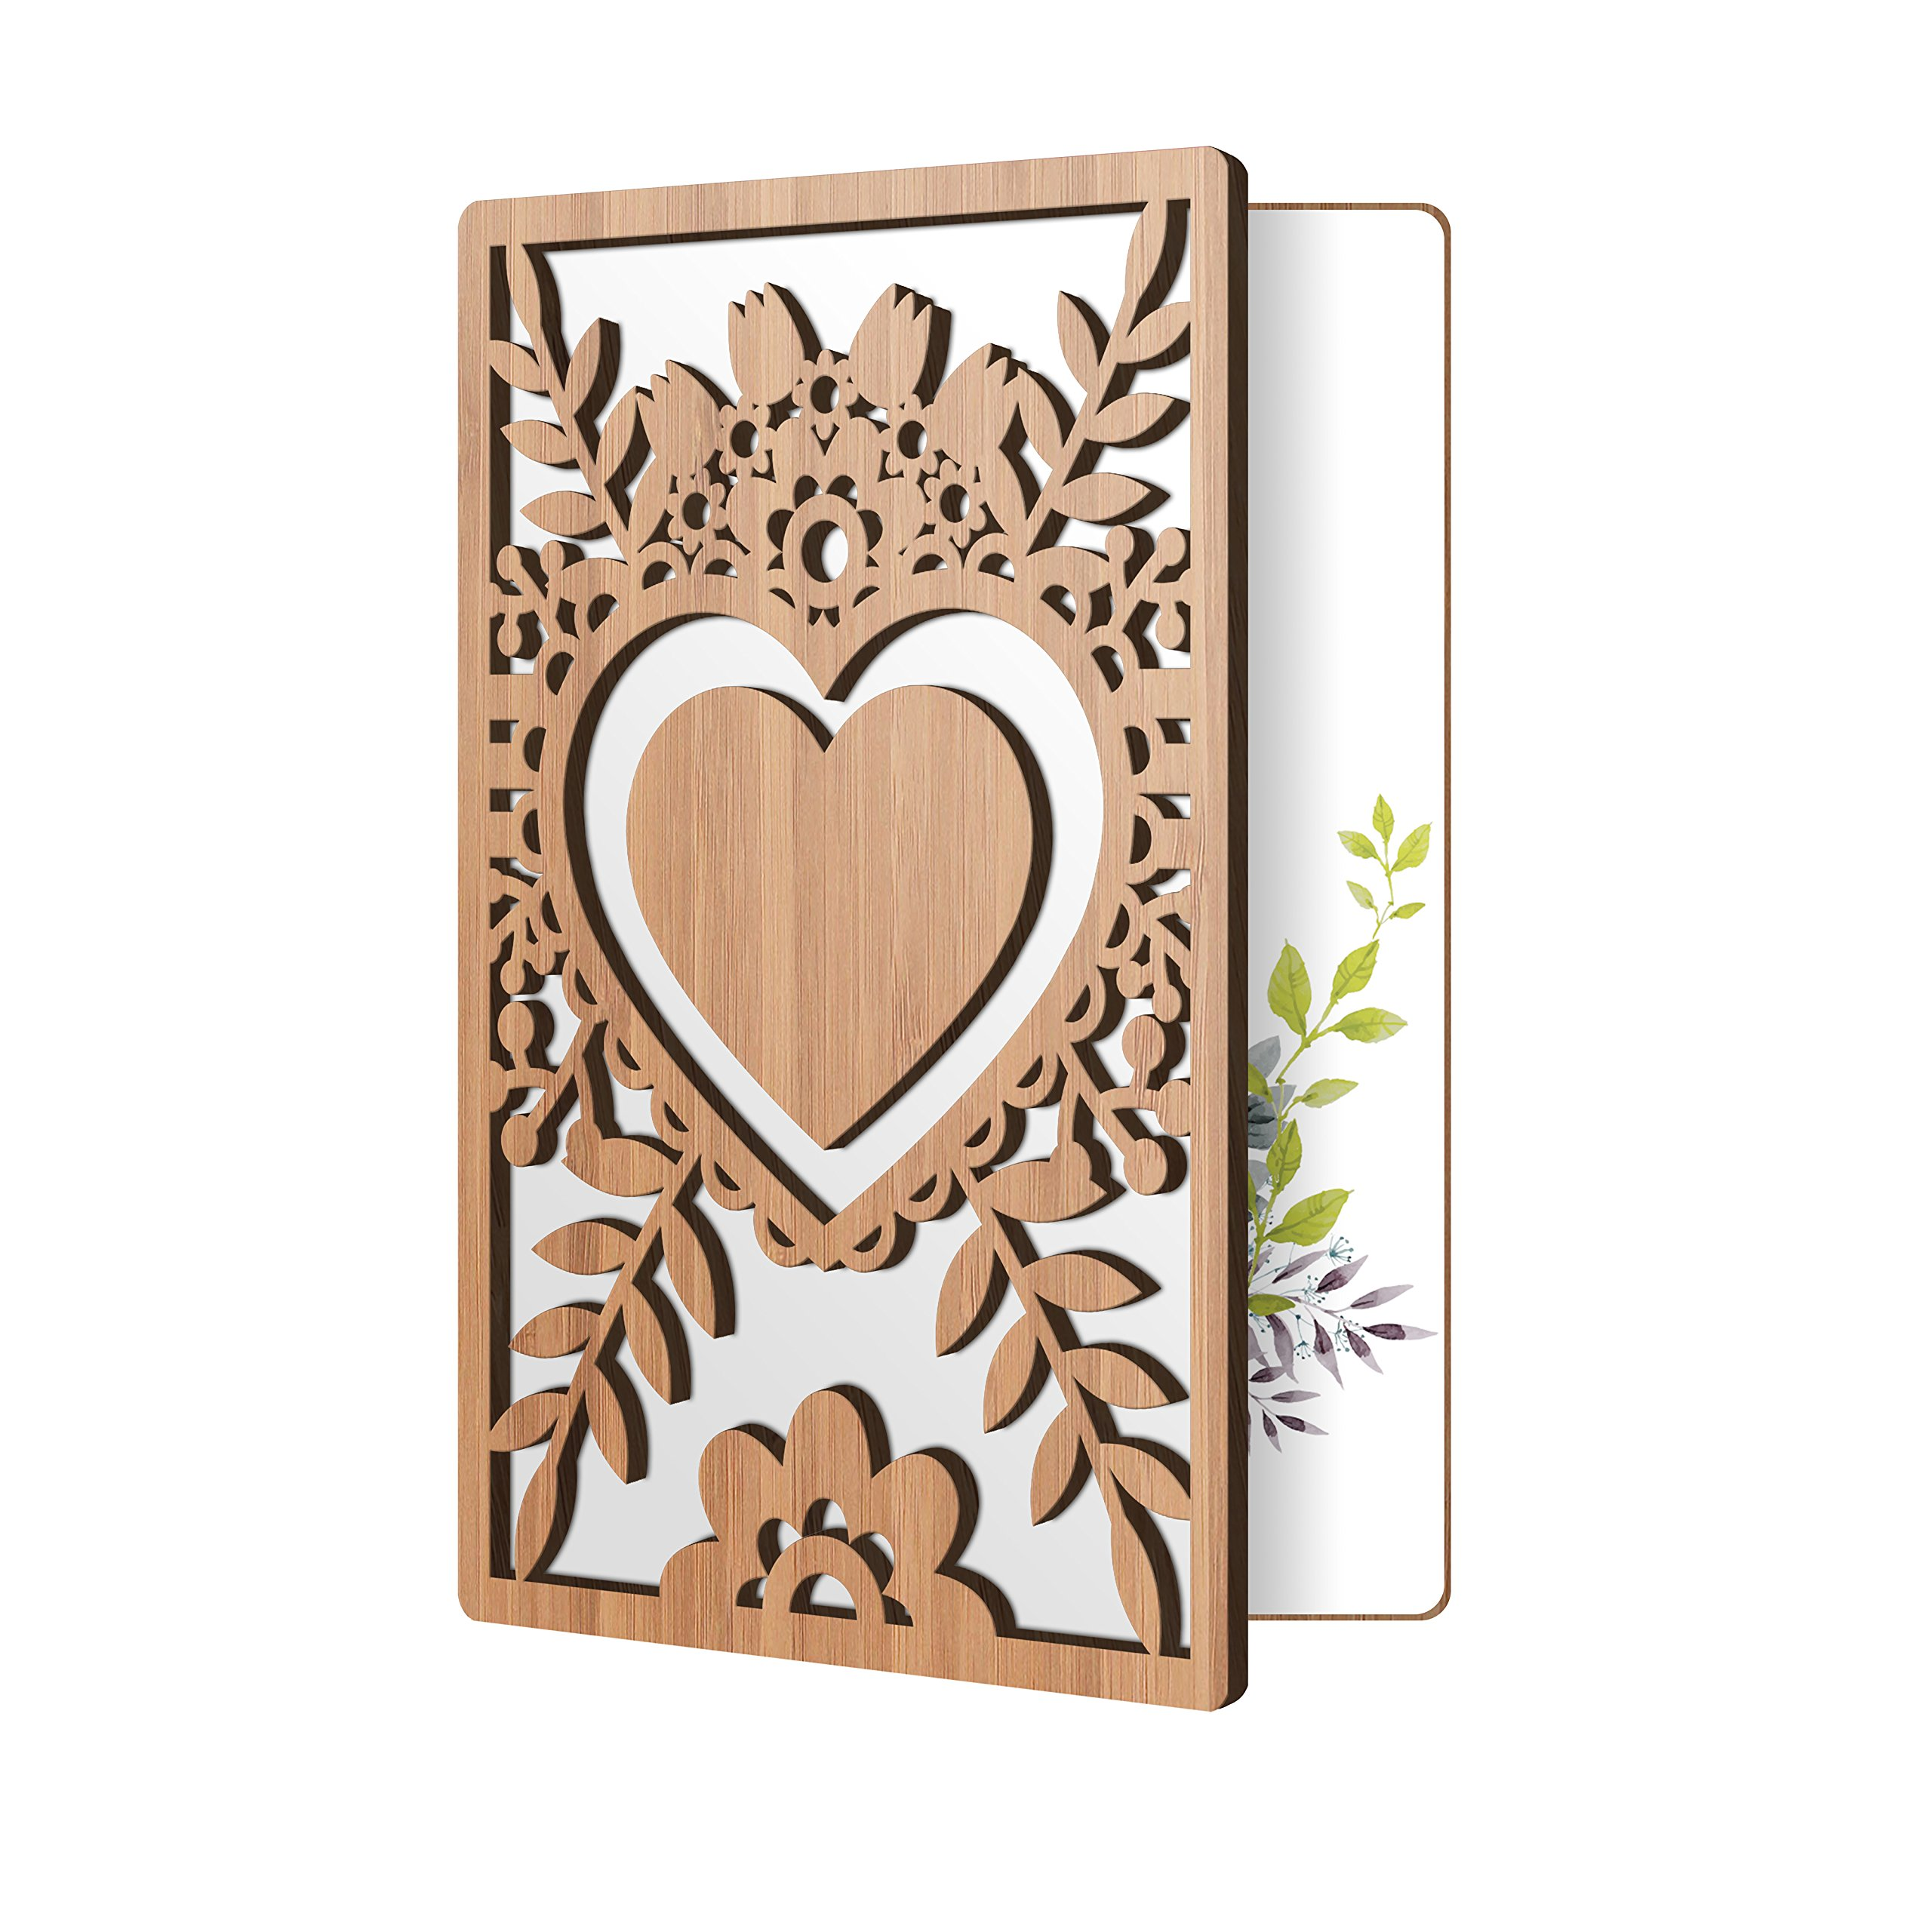 Bamboo Wood Greeting Card Floral Heart Design: Premium Handmade Wooden Card Perfect To Say I Love You, Happy Anniversary, Just Because, Or A Great Mother's Day Card